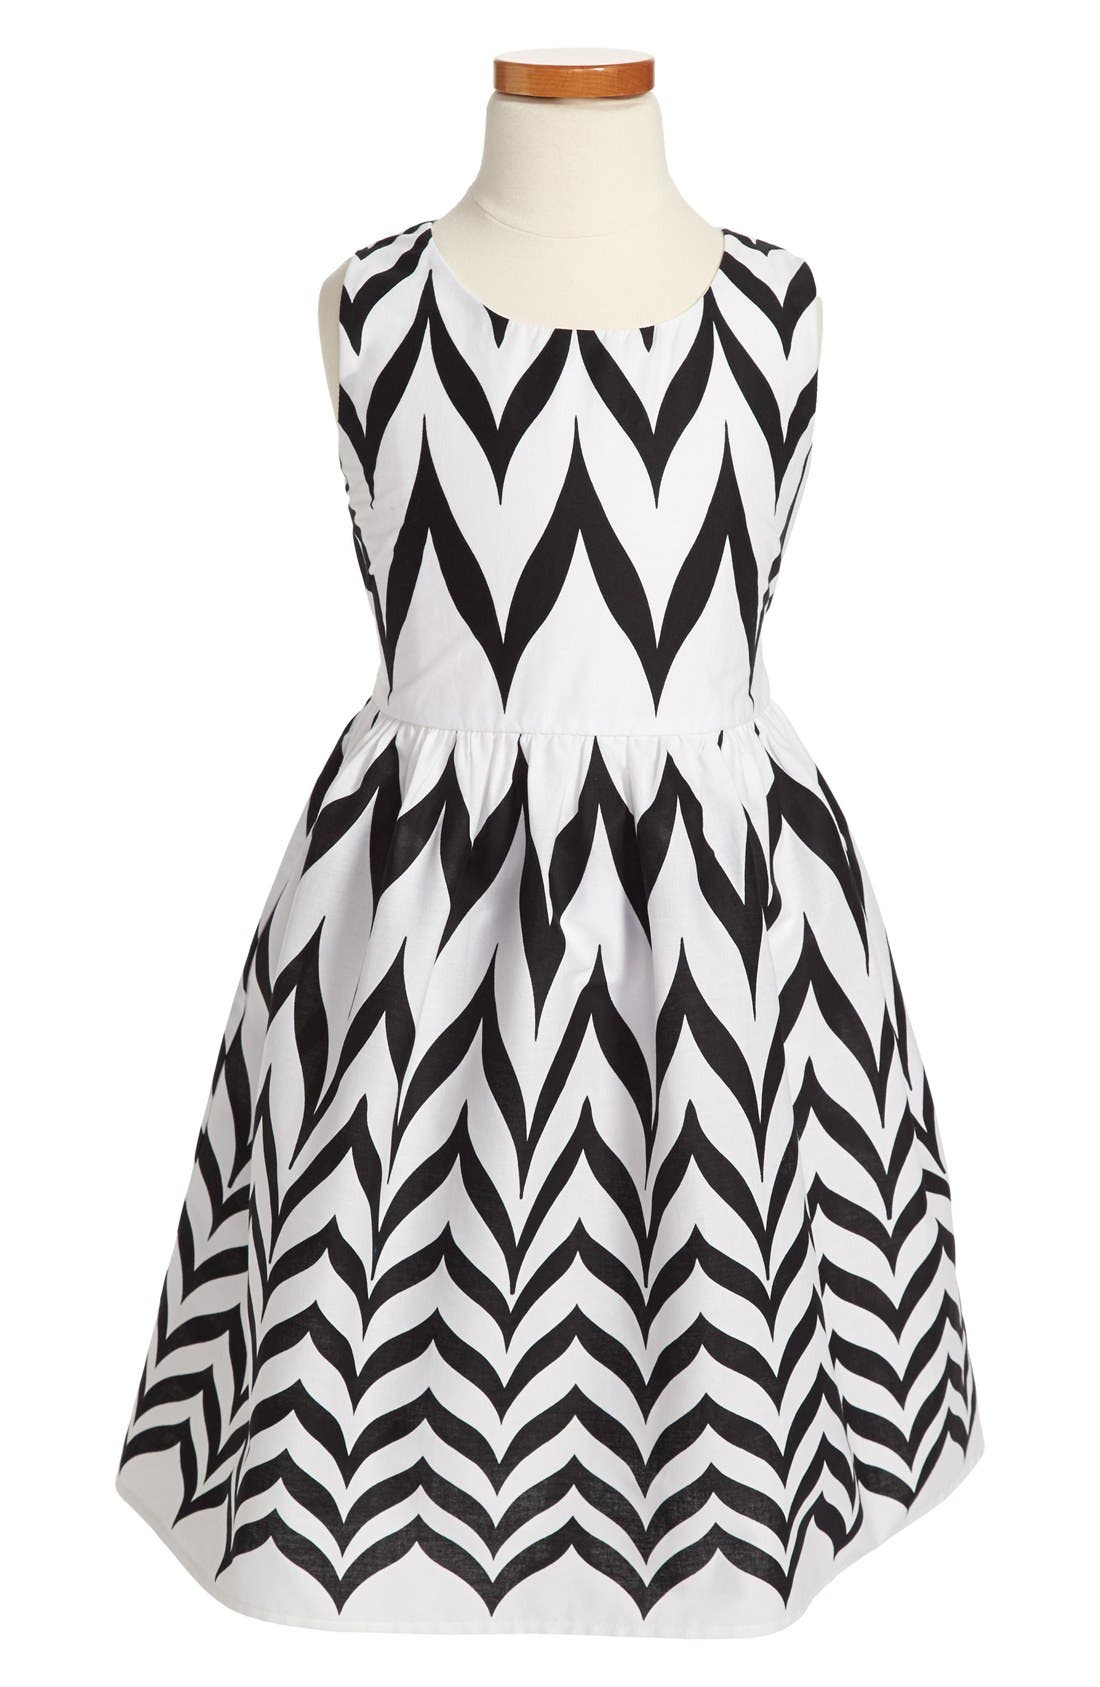 Main Image - Roxette Chevron Print Sleeveless Dress (Big Girls)